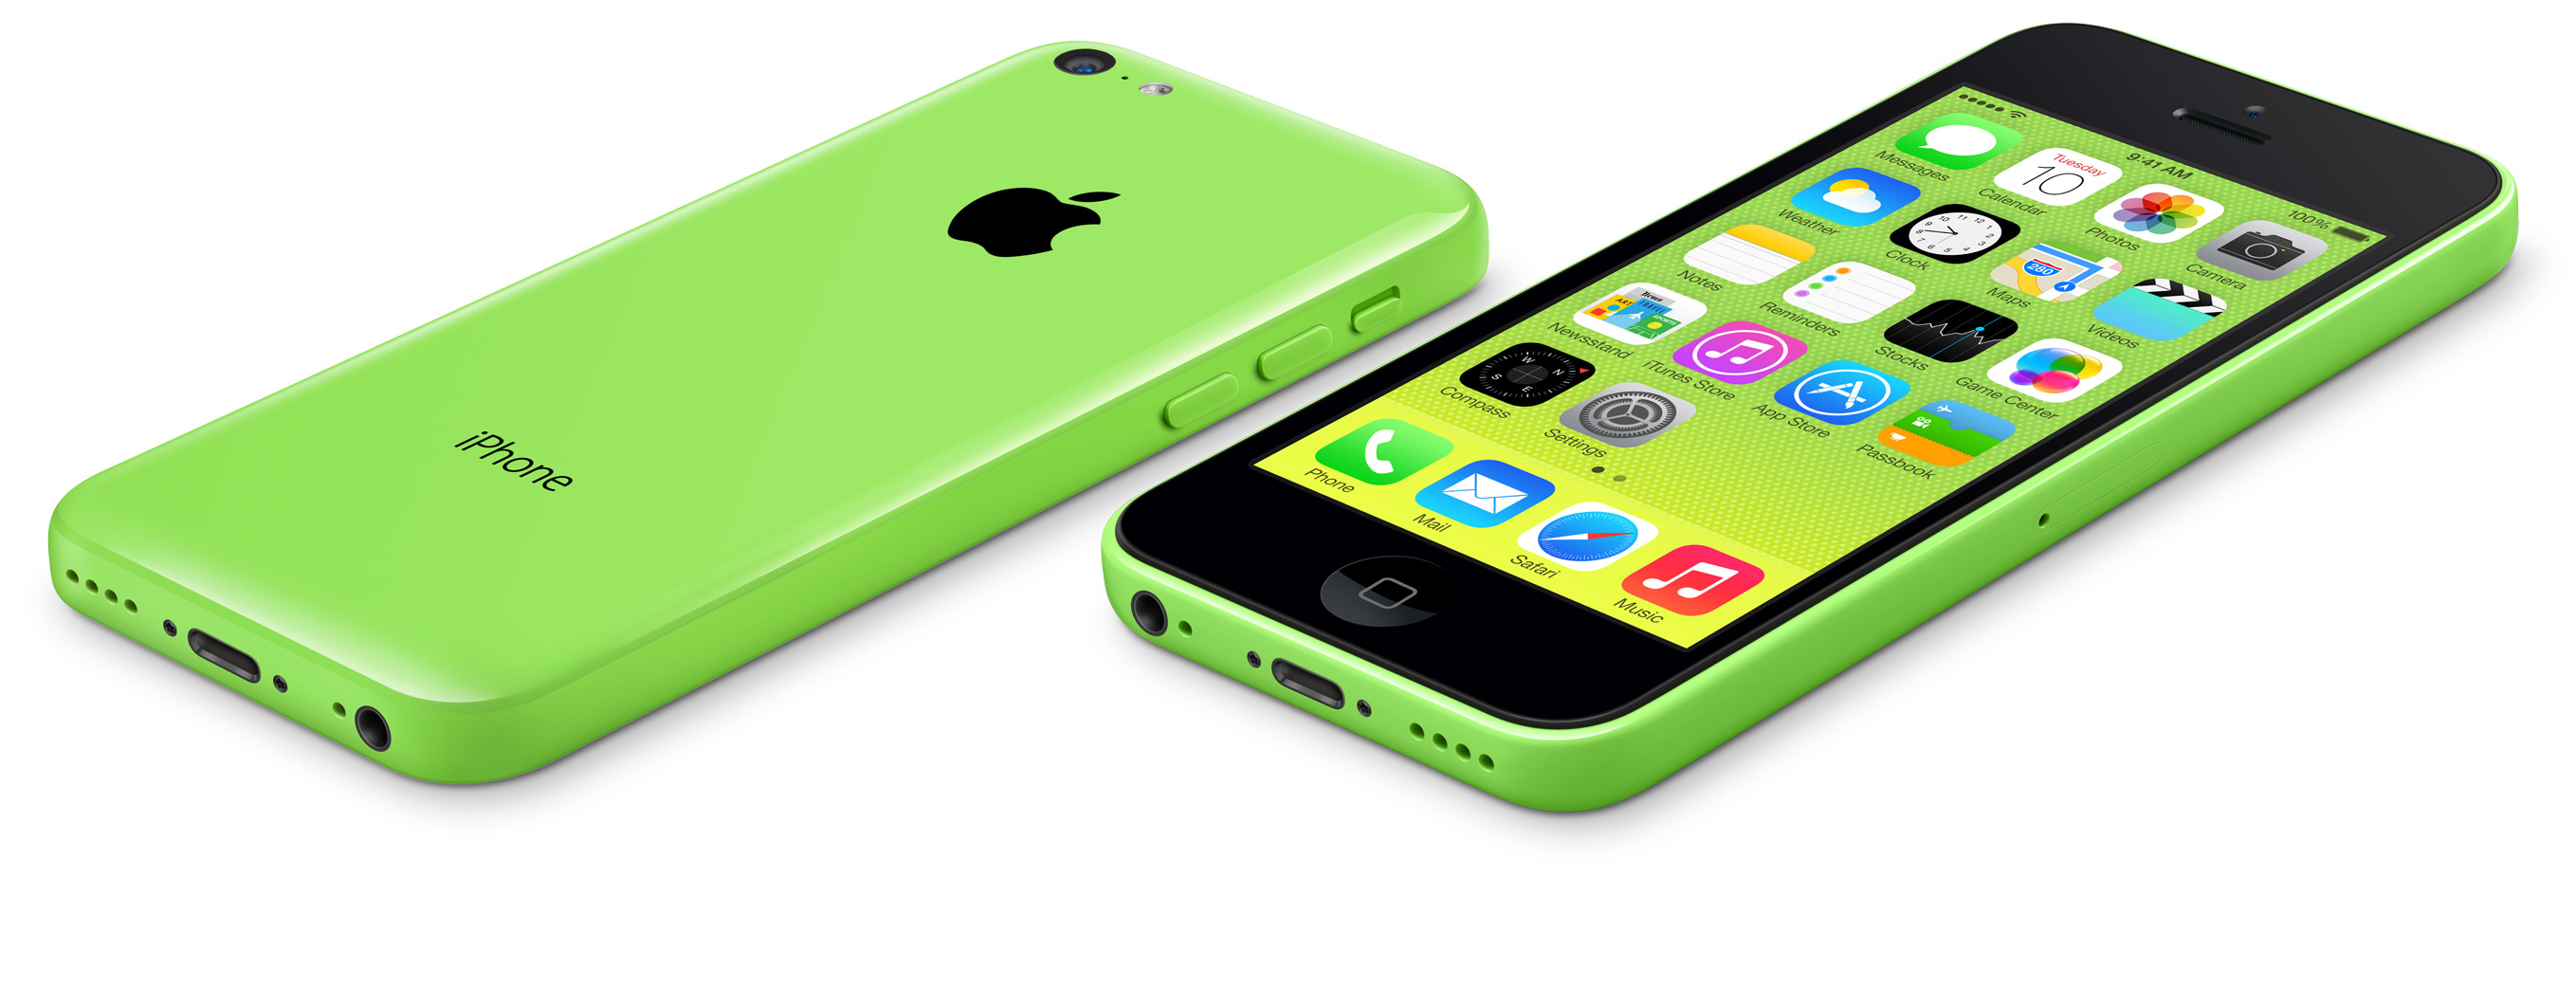 green iPhone 5c front and back